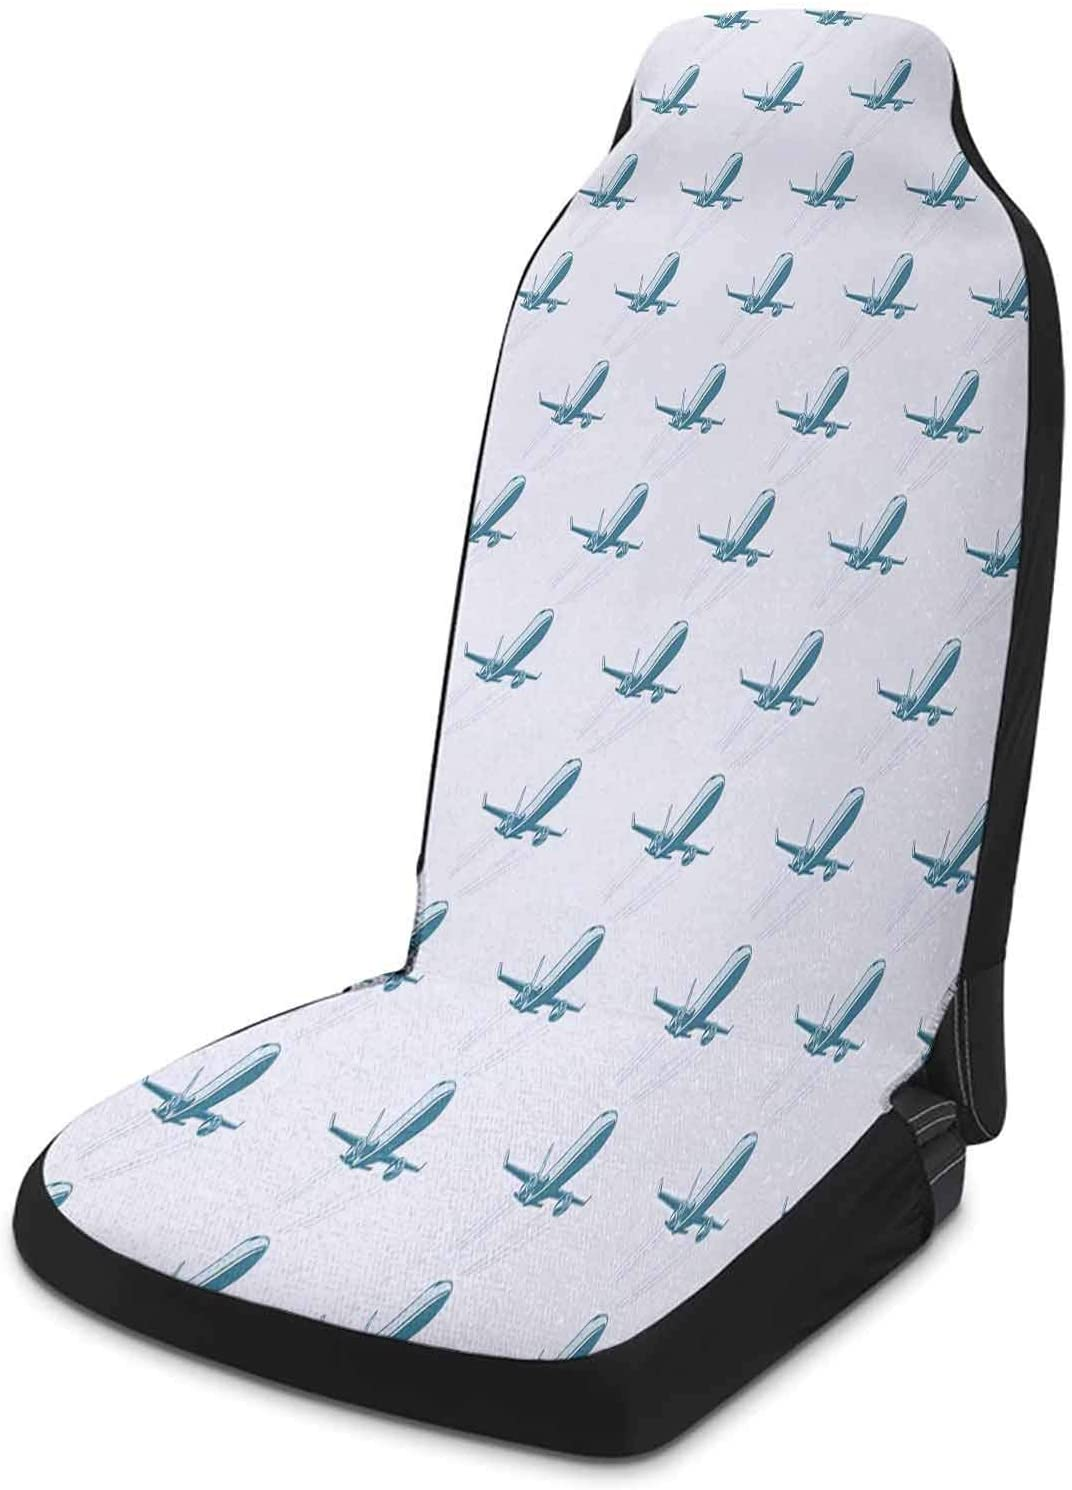 Auto Car Seat Cover 1 Piece, Airplane Auto Seat Cover - Retro Pop Art Style Air Transport Travel Voyage Theme Fast Engine Technology, Pale Blue White